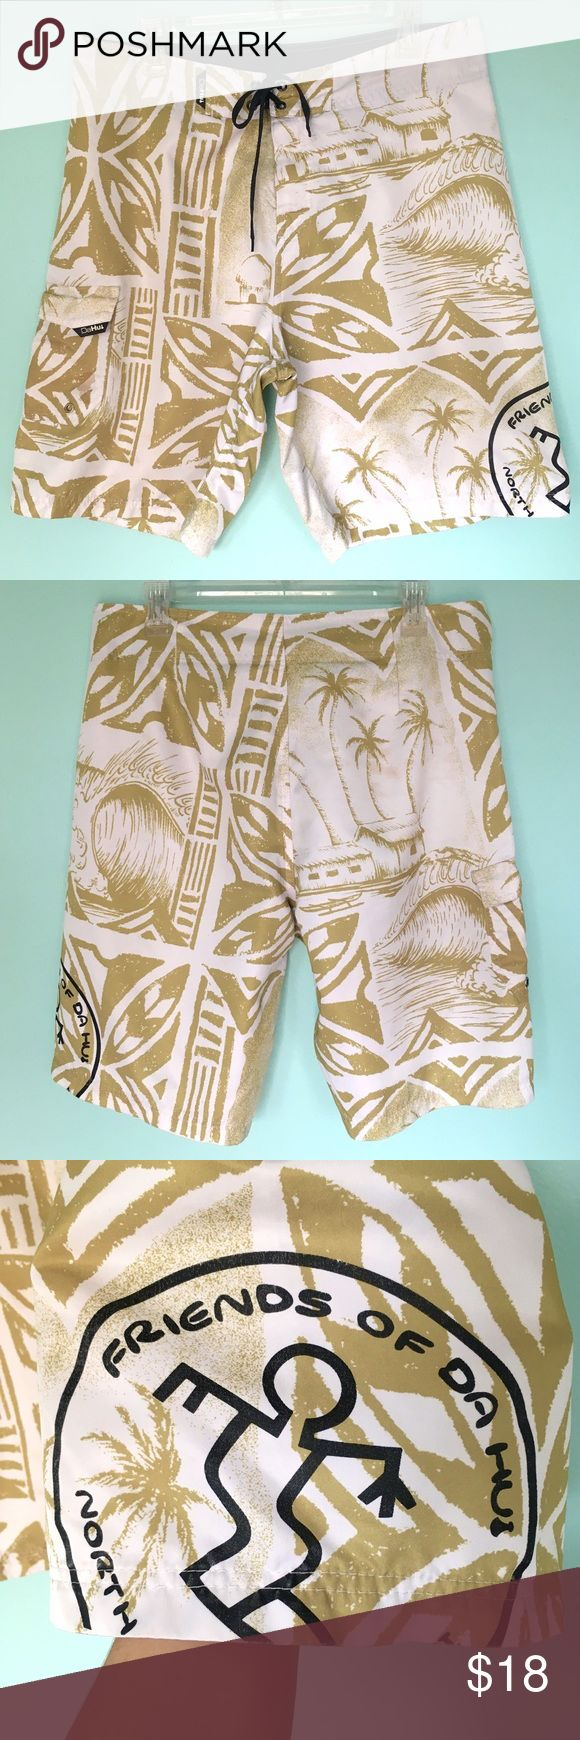 Da Hui Hawaii Boardshorts Tropical Aloha Print 34 Da Hui North Shore Oahu Board Shorts w/ Tropical Aloha Print and Drawstring/Tie/Velcro closure and one side cargo pocket. Size 34. White with light olive green print. Used, good condition, except for some light stains in a few spots (shown in pics). Great for surfing, swimming and chilling at the beach, or for any casual wear. 🏝 Da Hui Swim Board Shorts